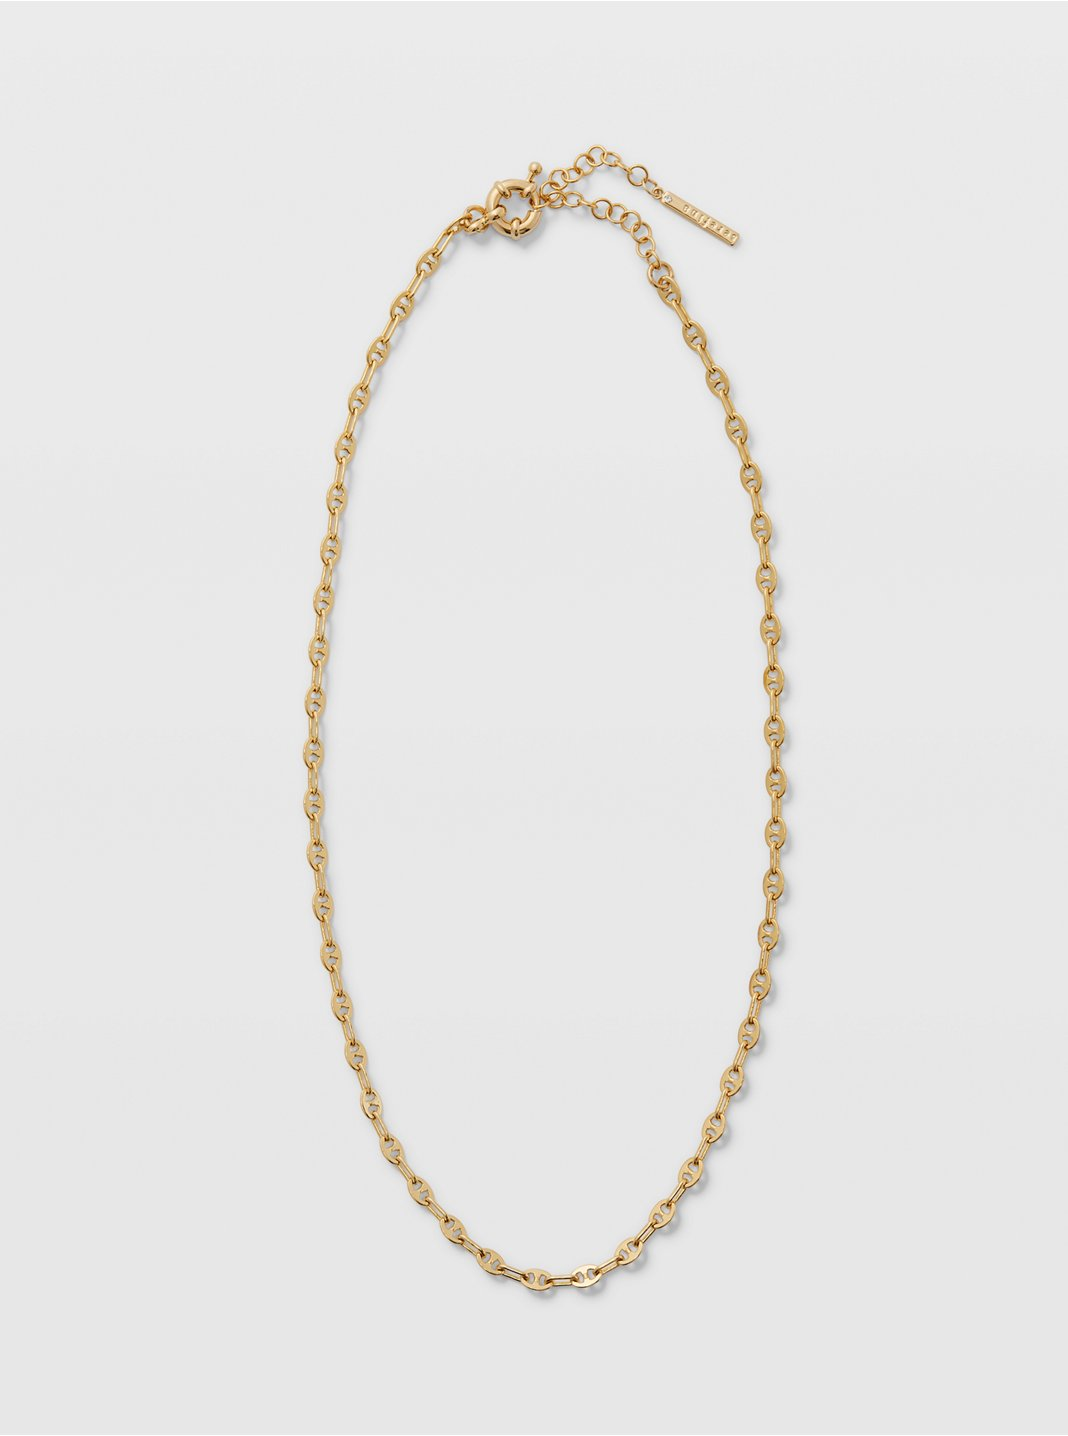 Serefina Short Oval Necklace